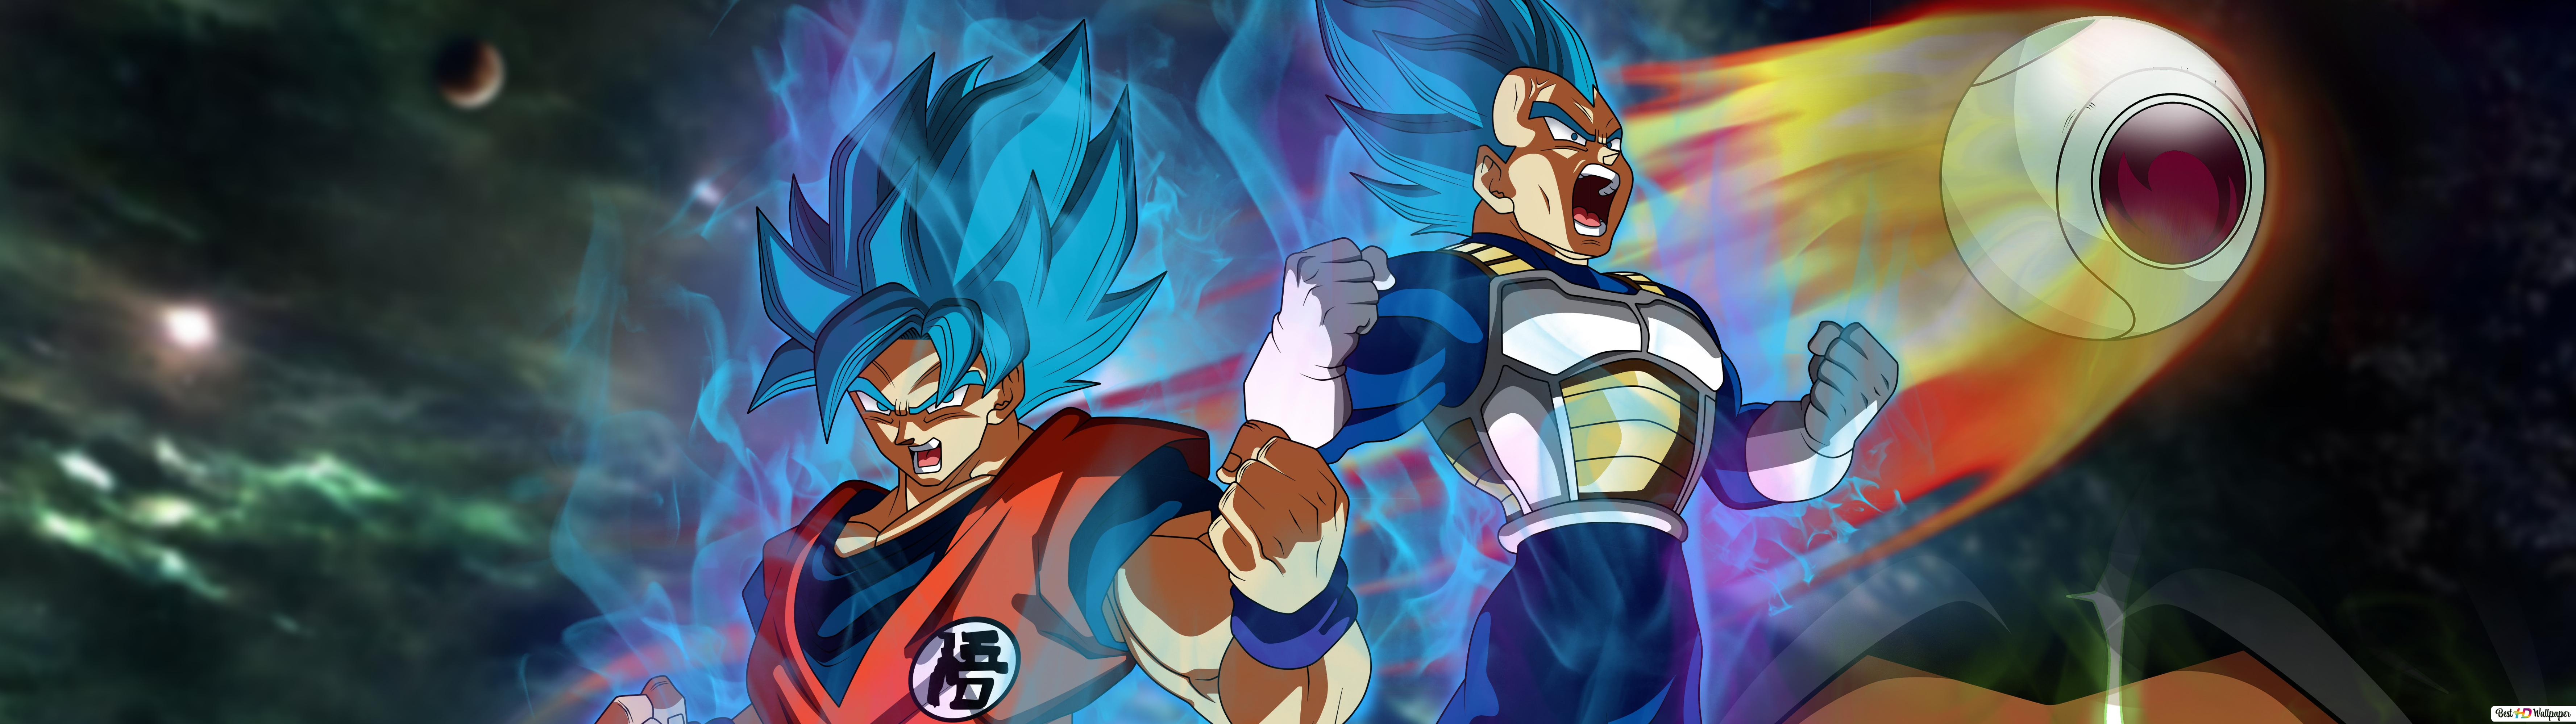 Dragon Ball Super Broly Movie Goku Vegeta Broly Hd Wallpaper